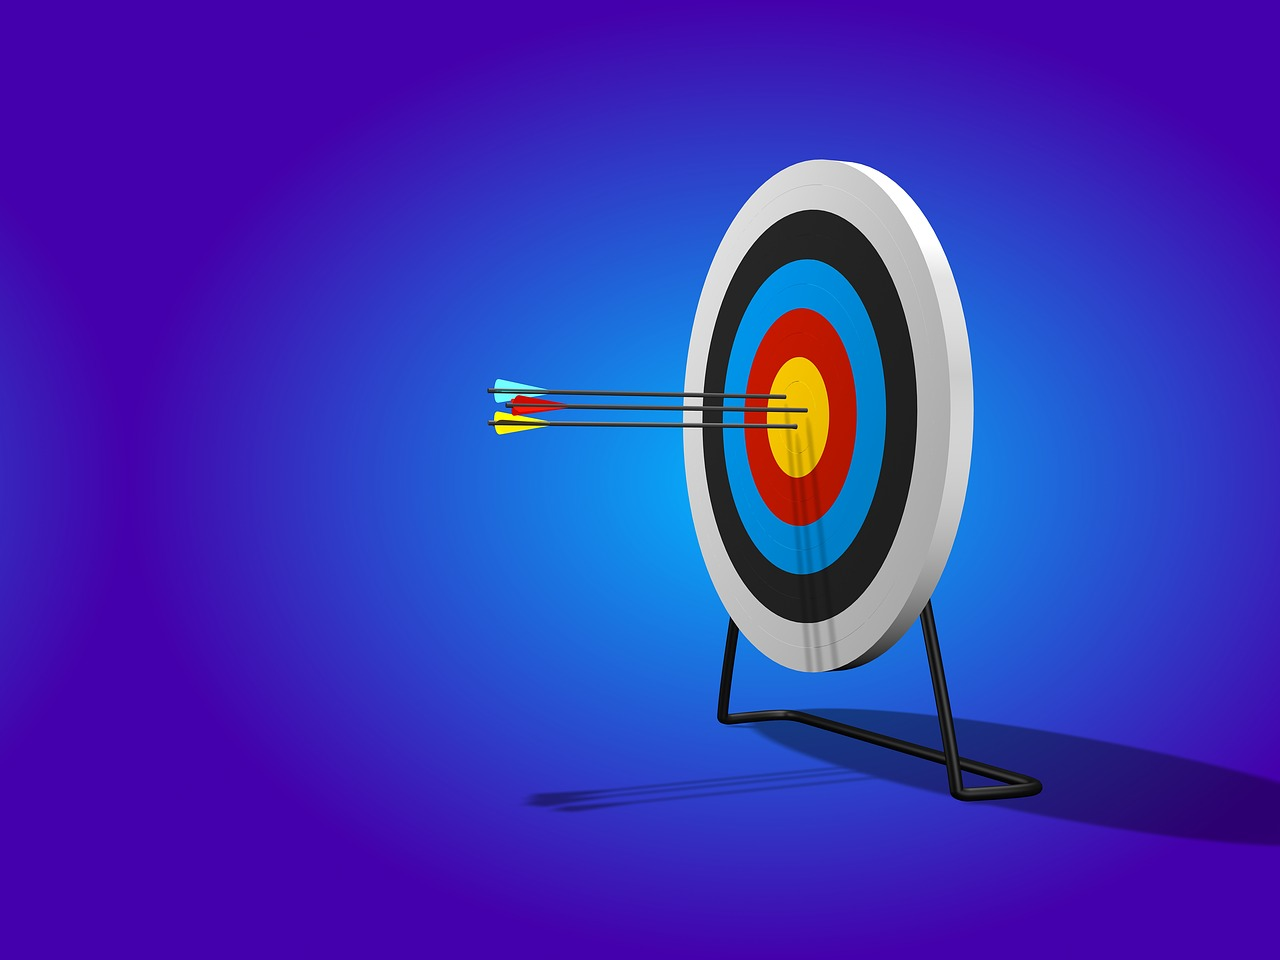 B2B marketing is about targeting